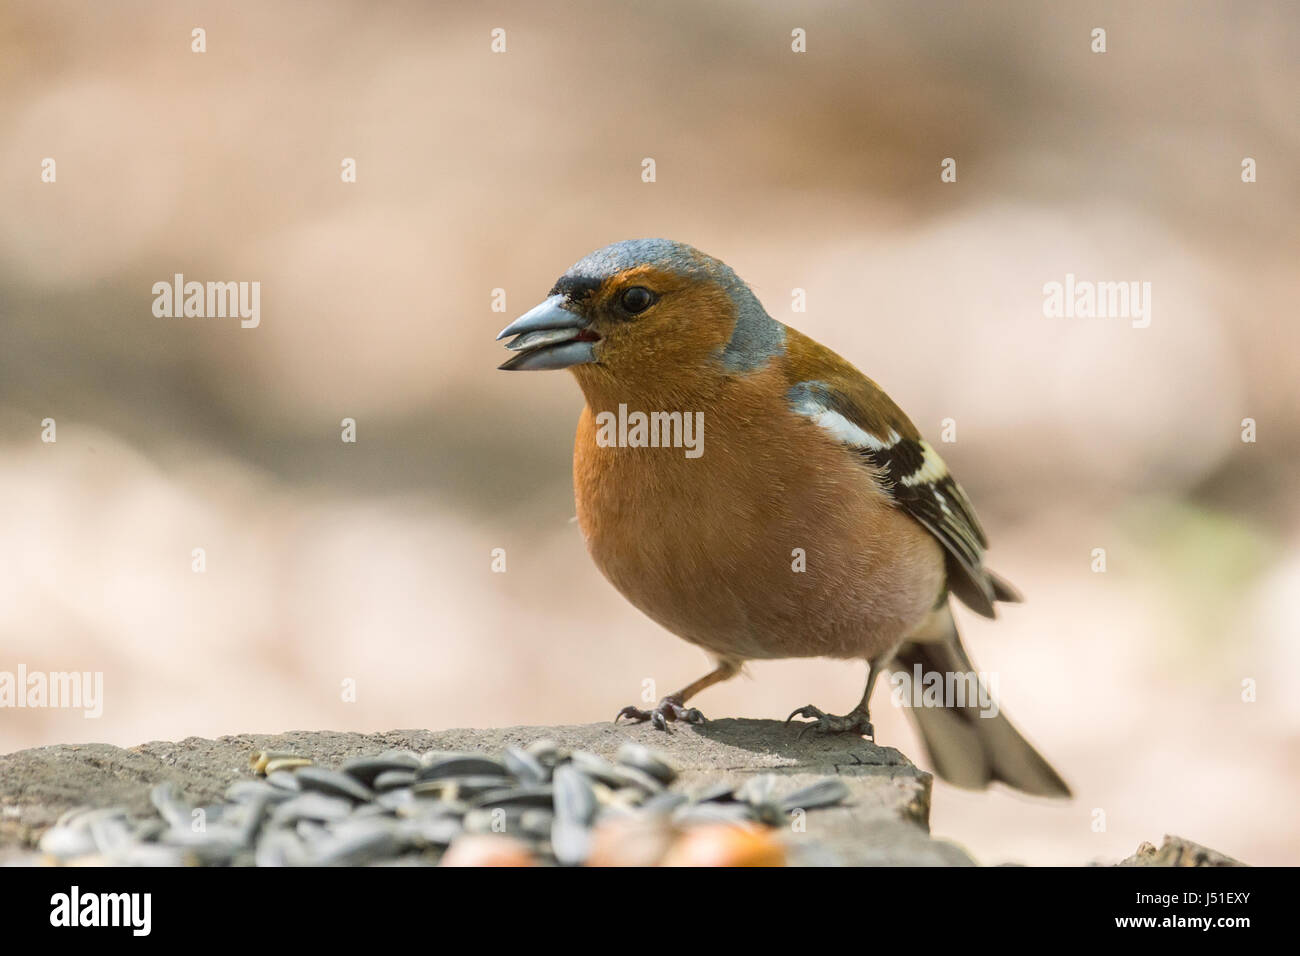 The picture shows a chaffinch on a branch - Stock Image